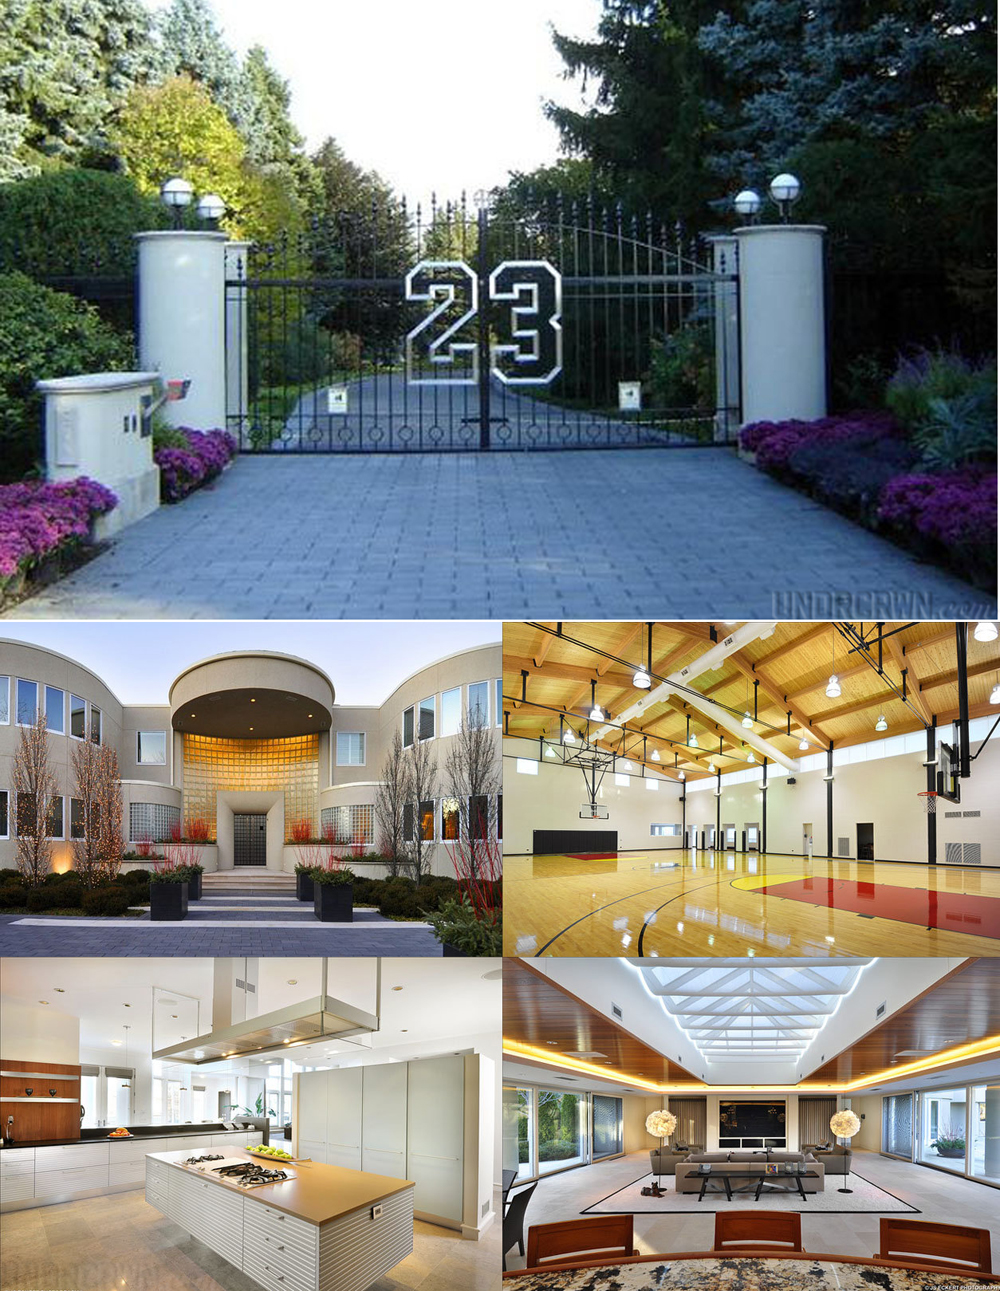 JordanCrib Top 15 Most Expensive Celebrity Homes